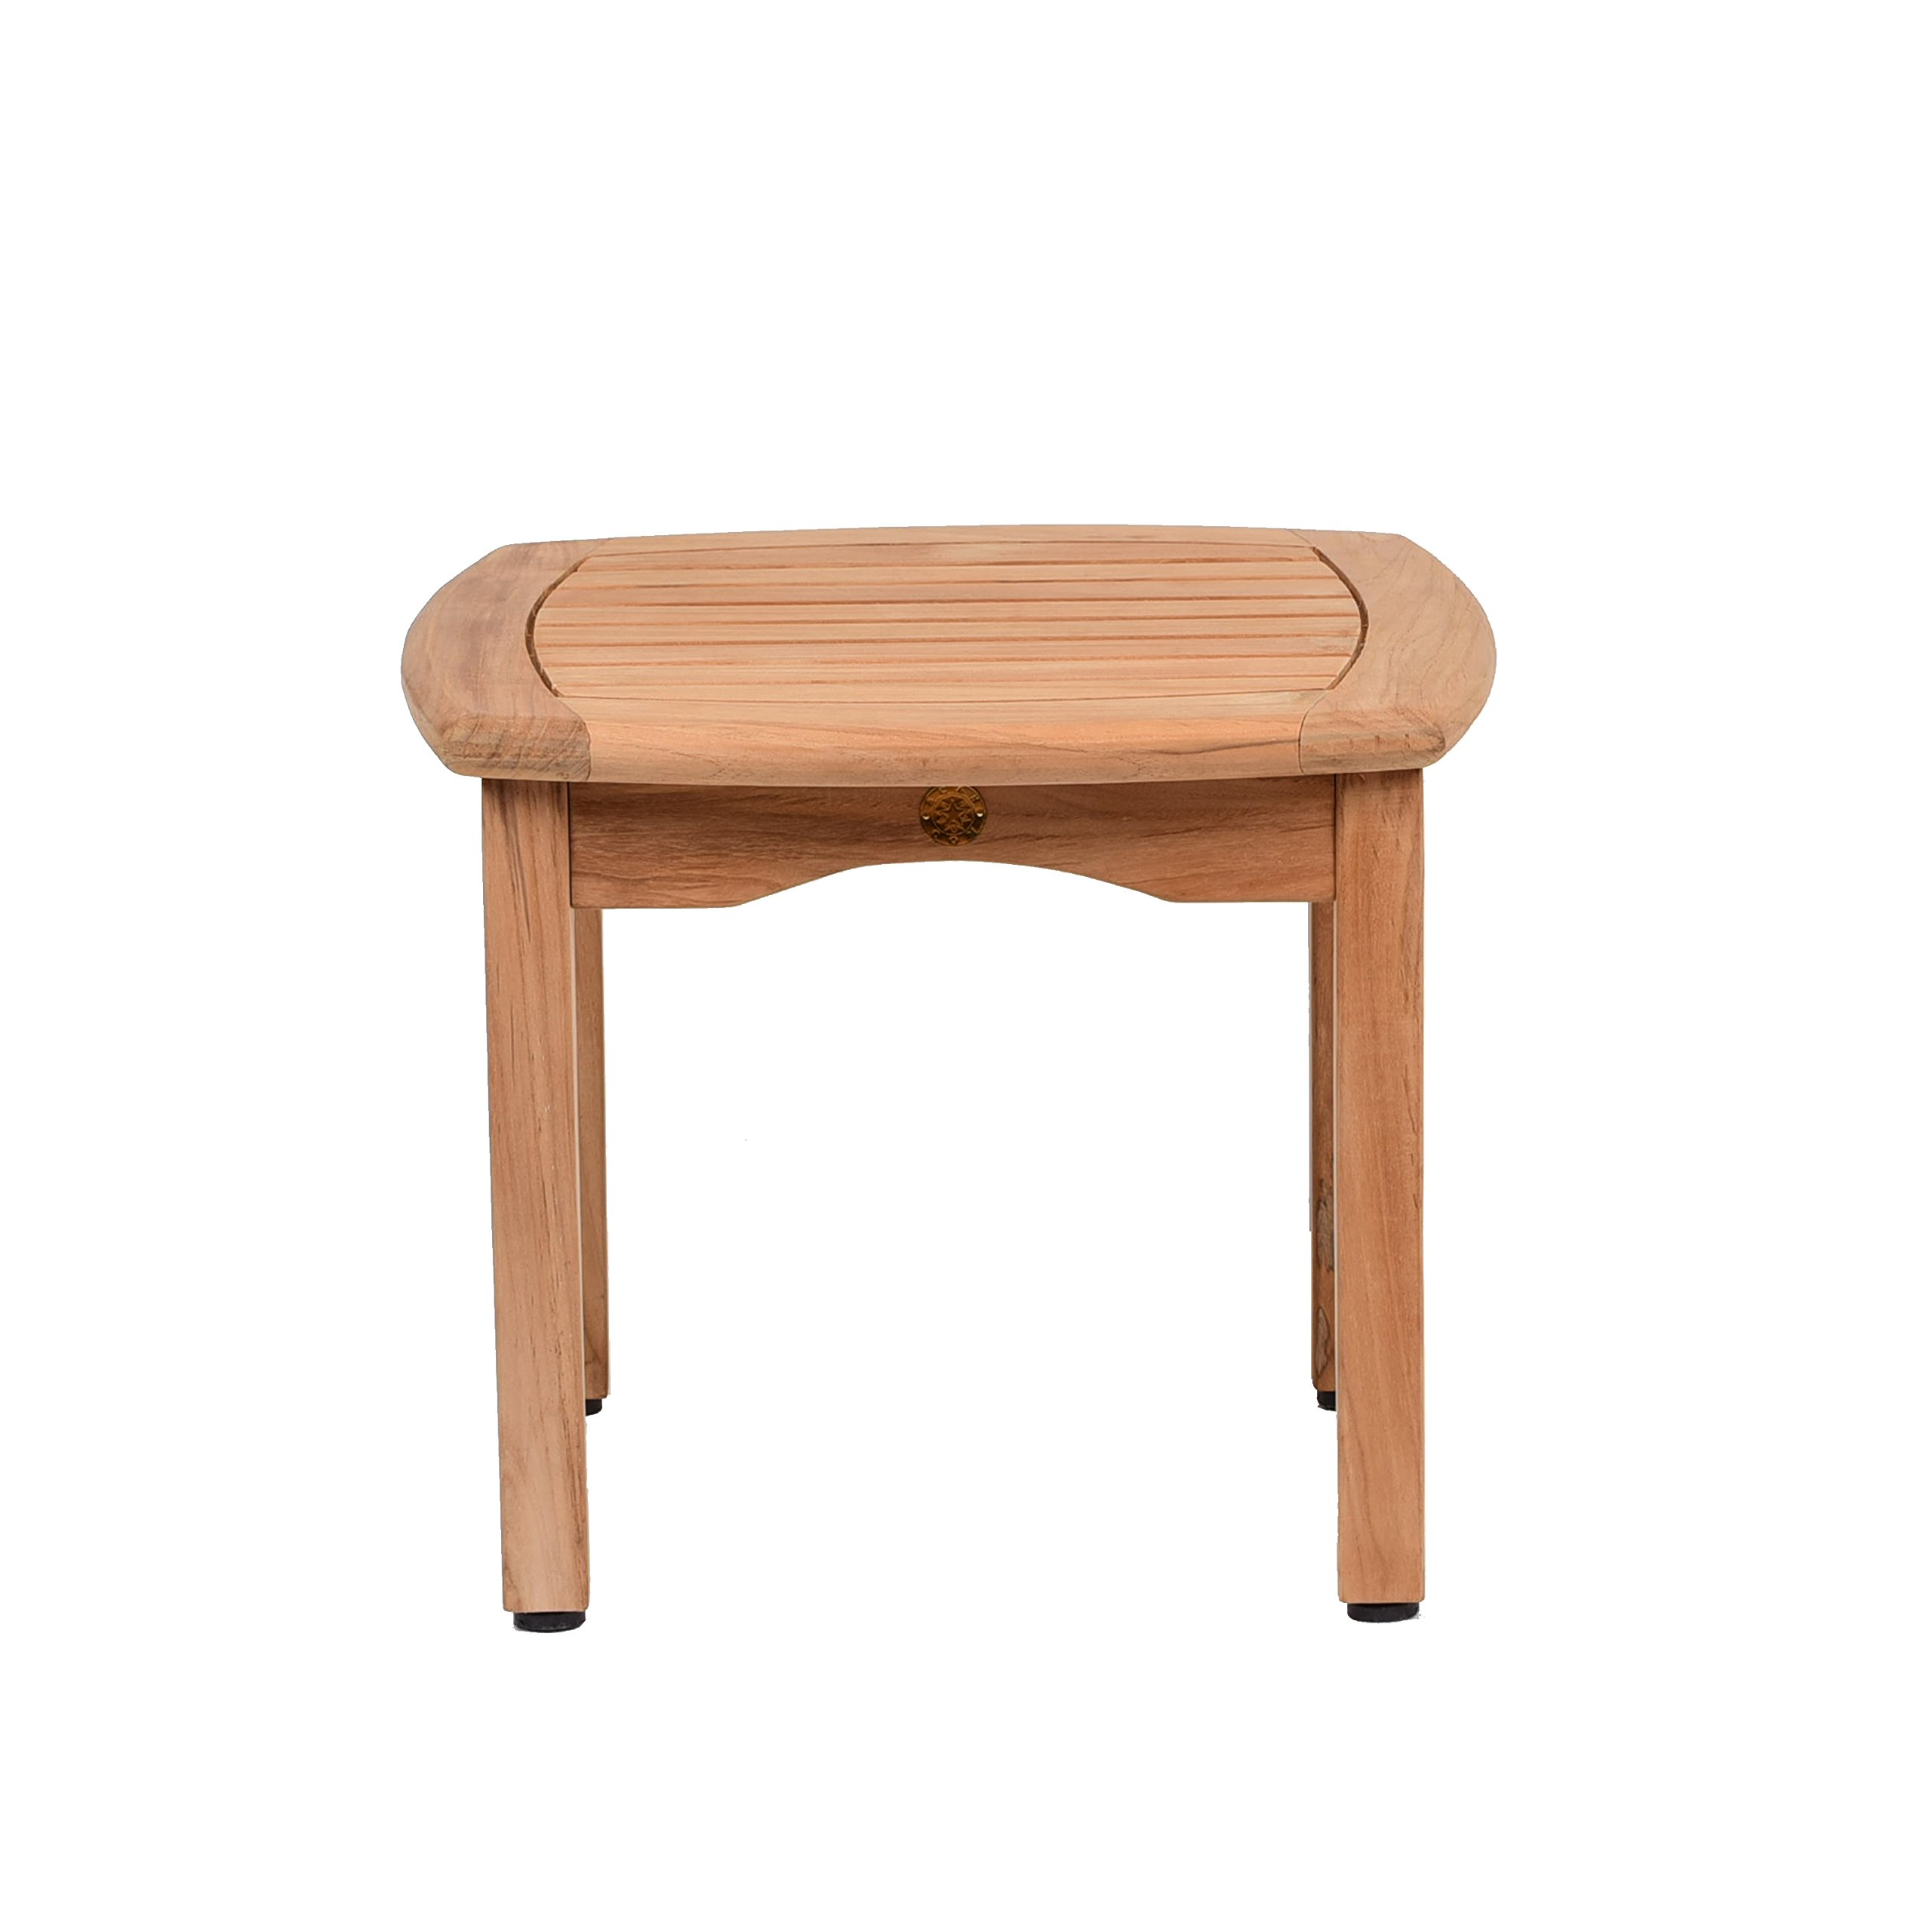 Amazonia Teak Papaya Square Side Table, 19.5'' x 19.5''